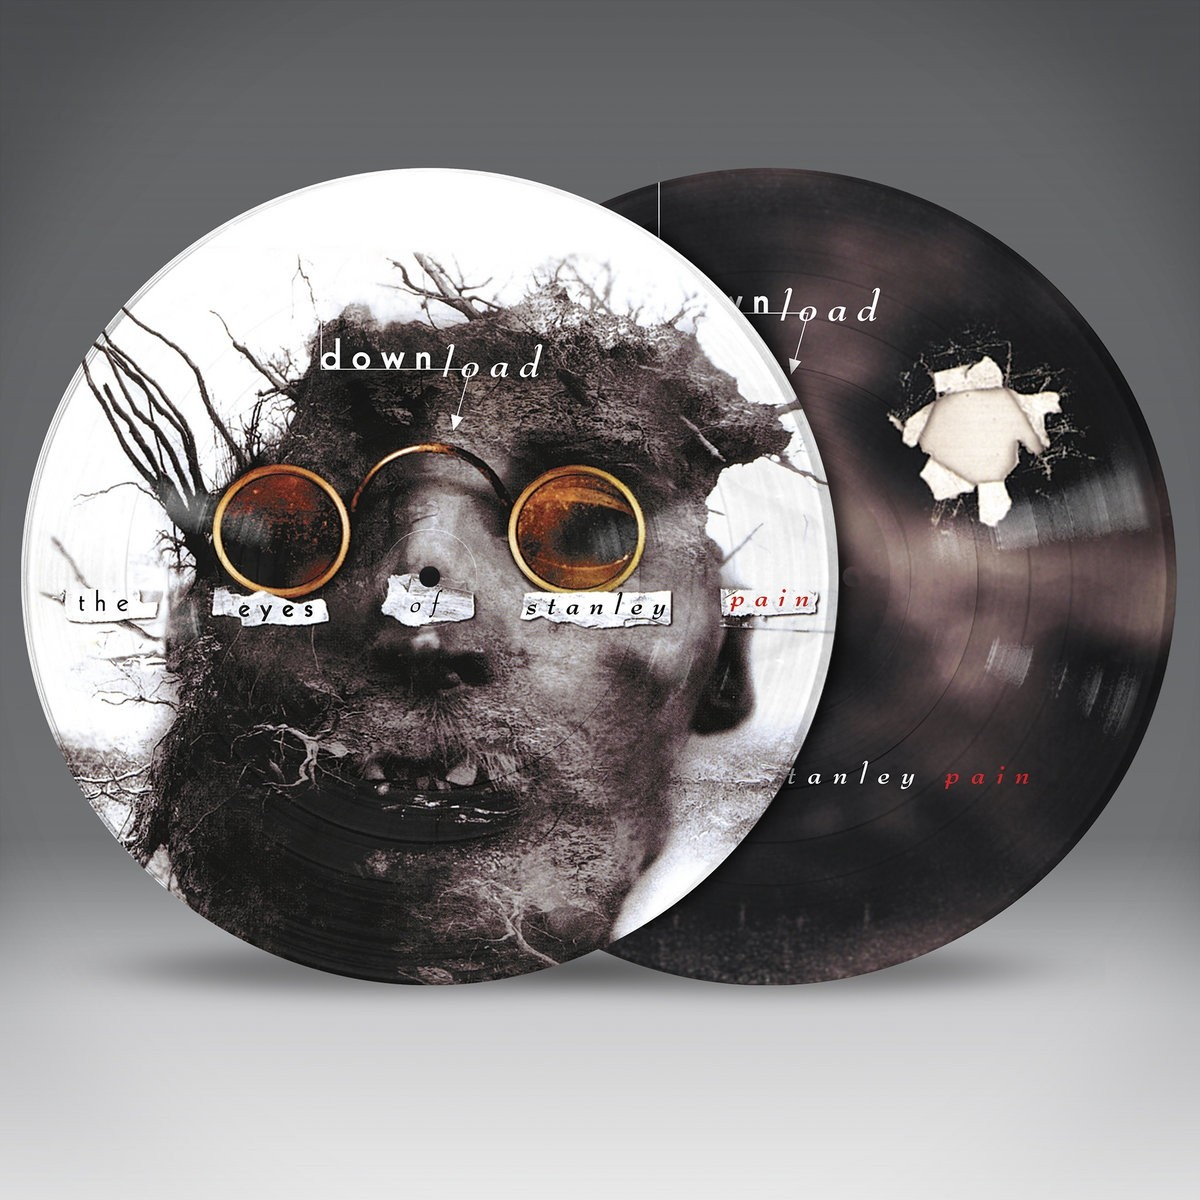 Download - The Eyes of Stanley Pain (Limited Edition) - 2 Picture Vinyl/LP